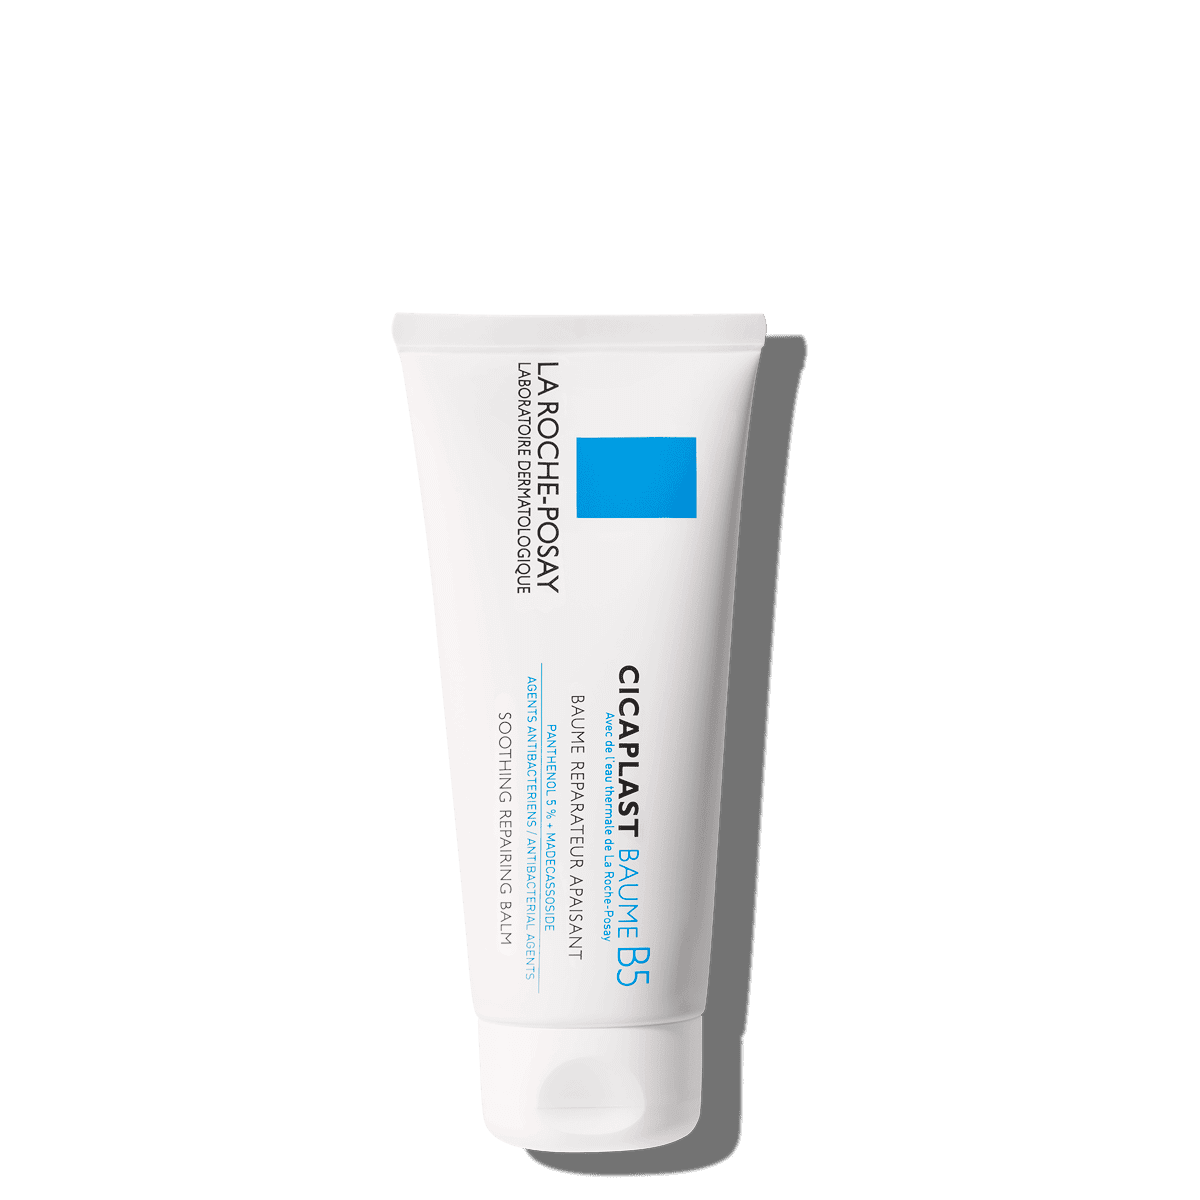 La Roche Posay ProductPage Damaged Cicaplast Baume B5 100ml 3337872413